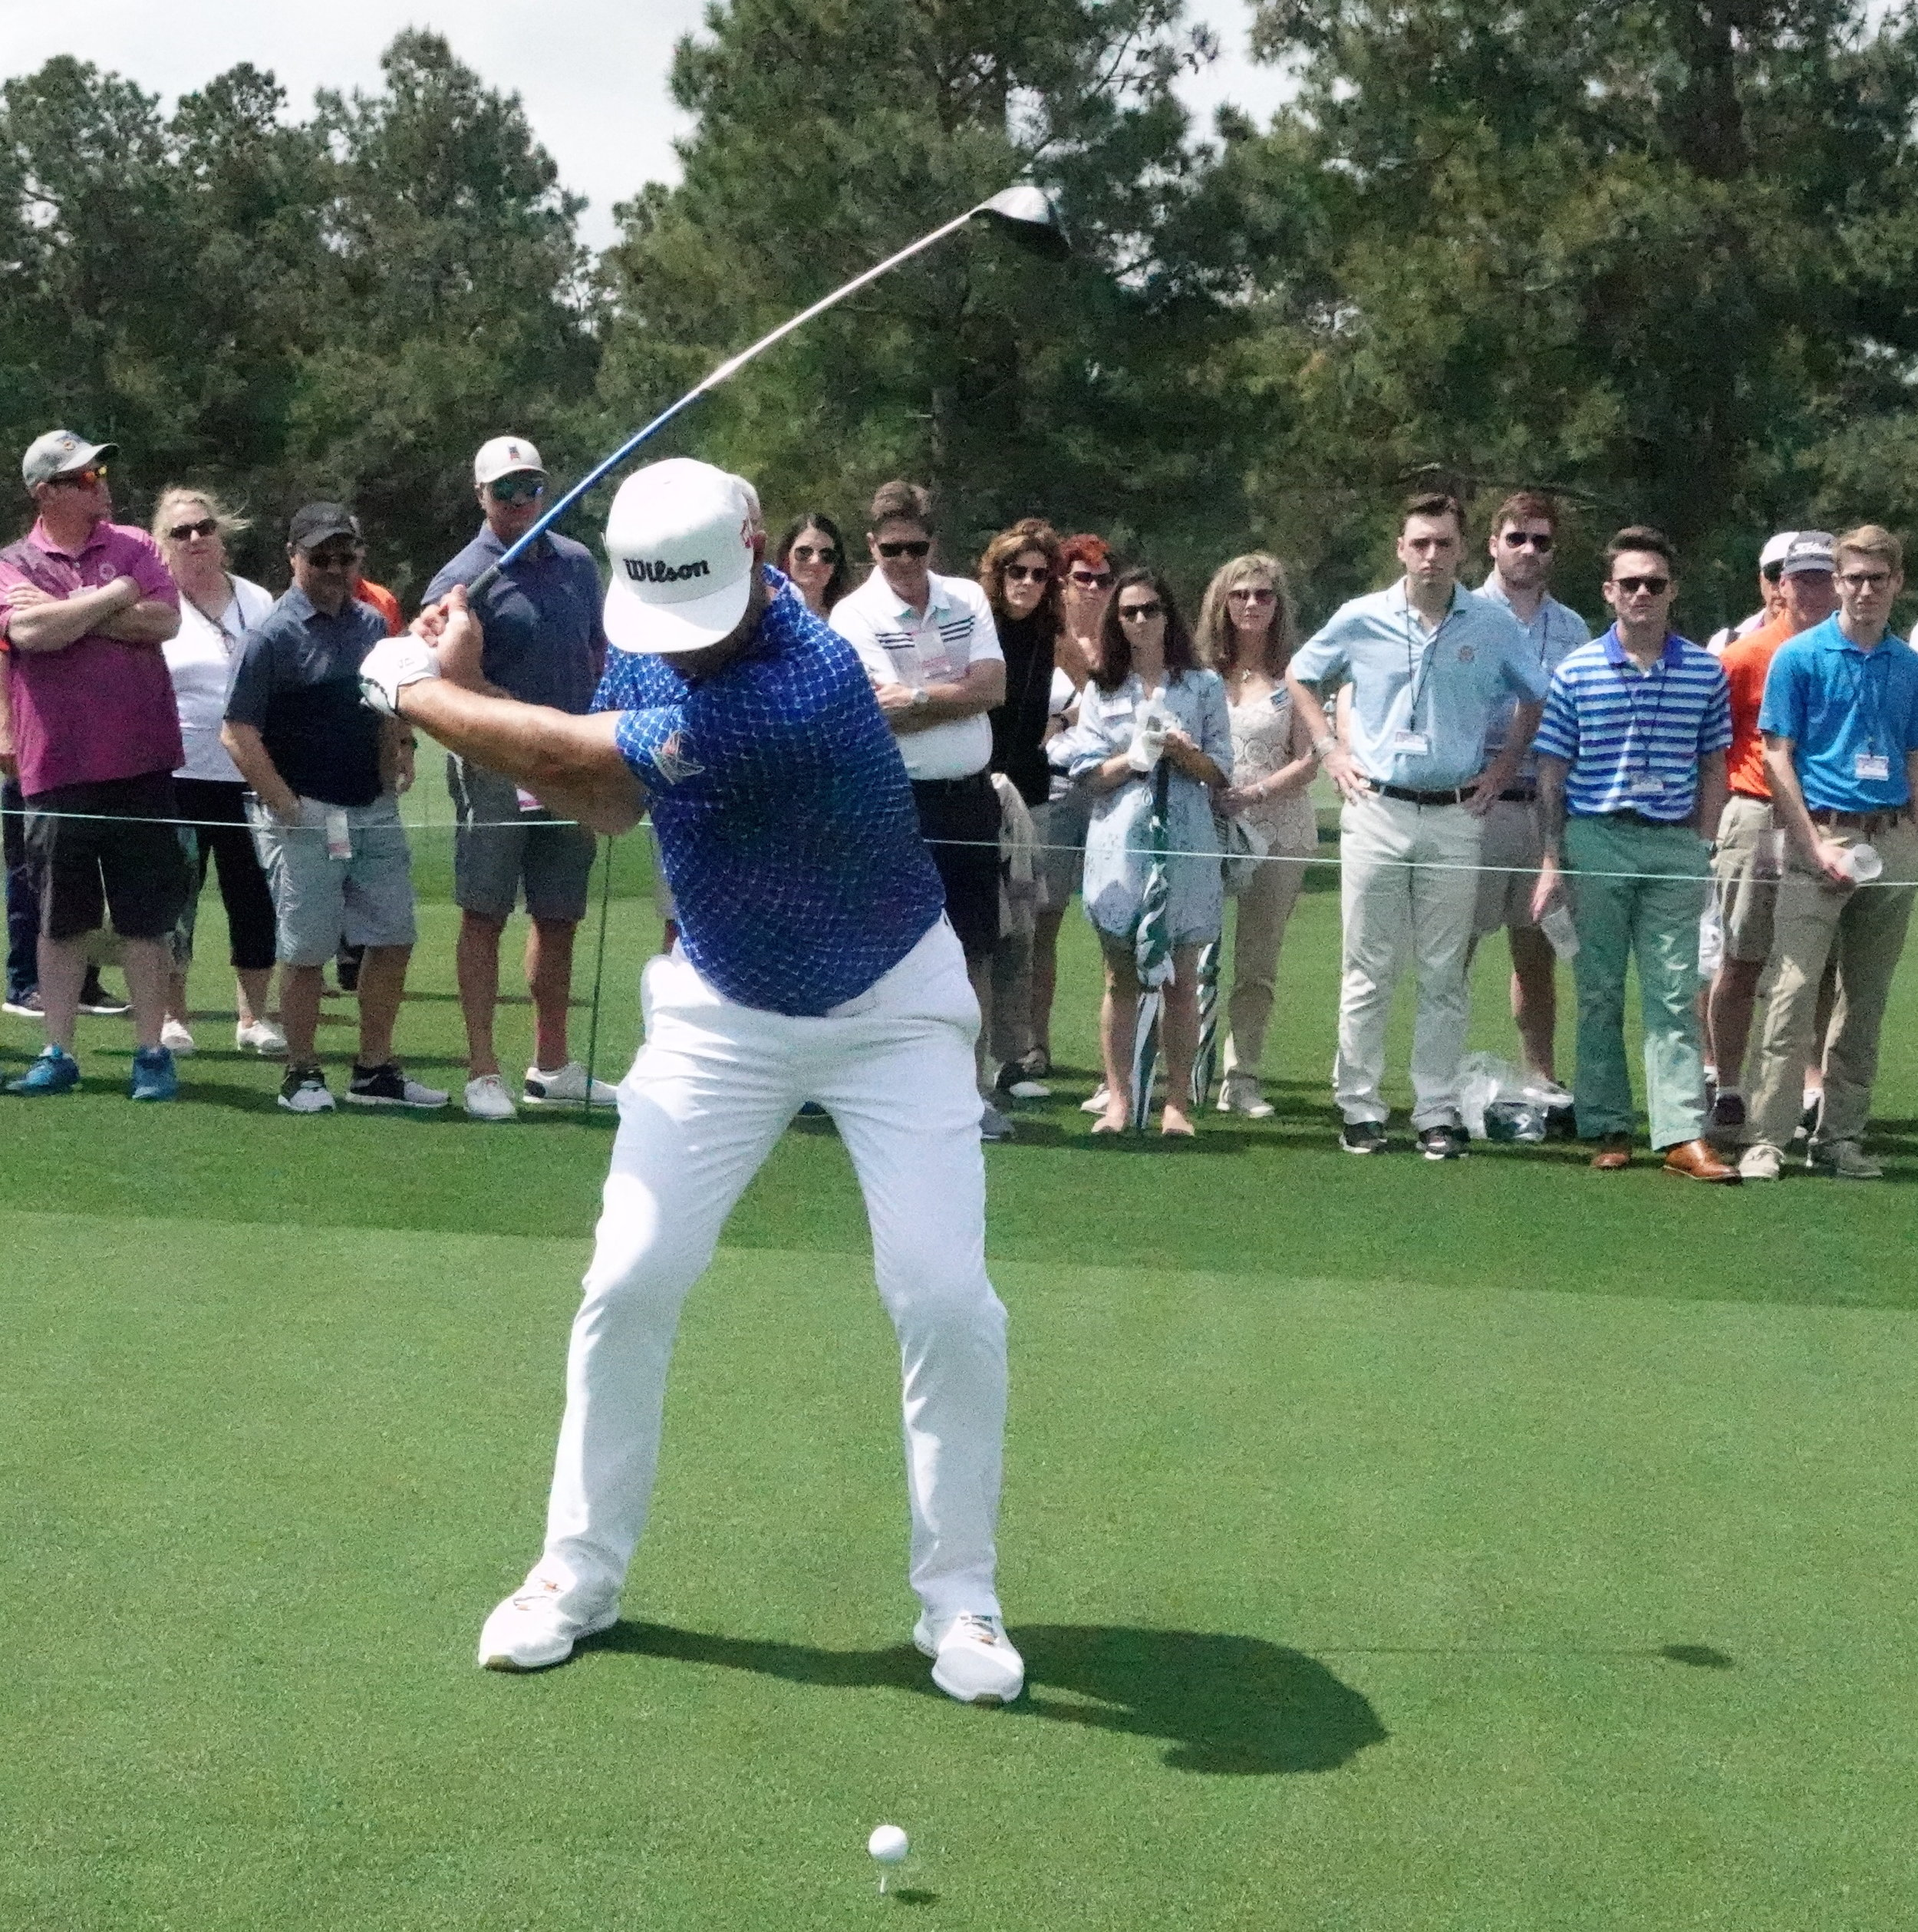 I photographed Gary Woodland's swing during the Monday practice round at this year's Masters.